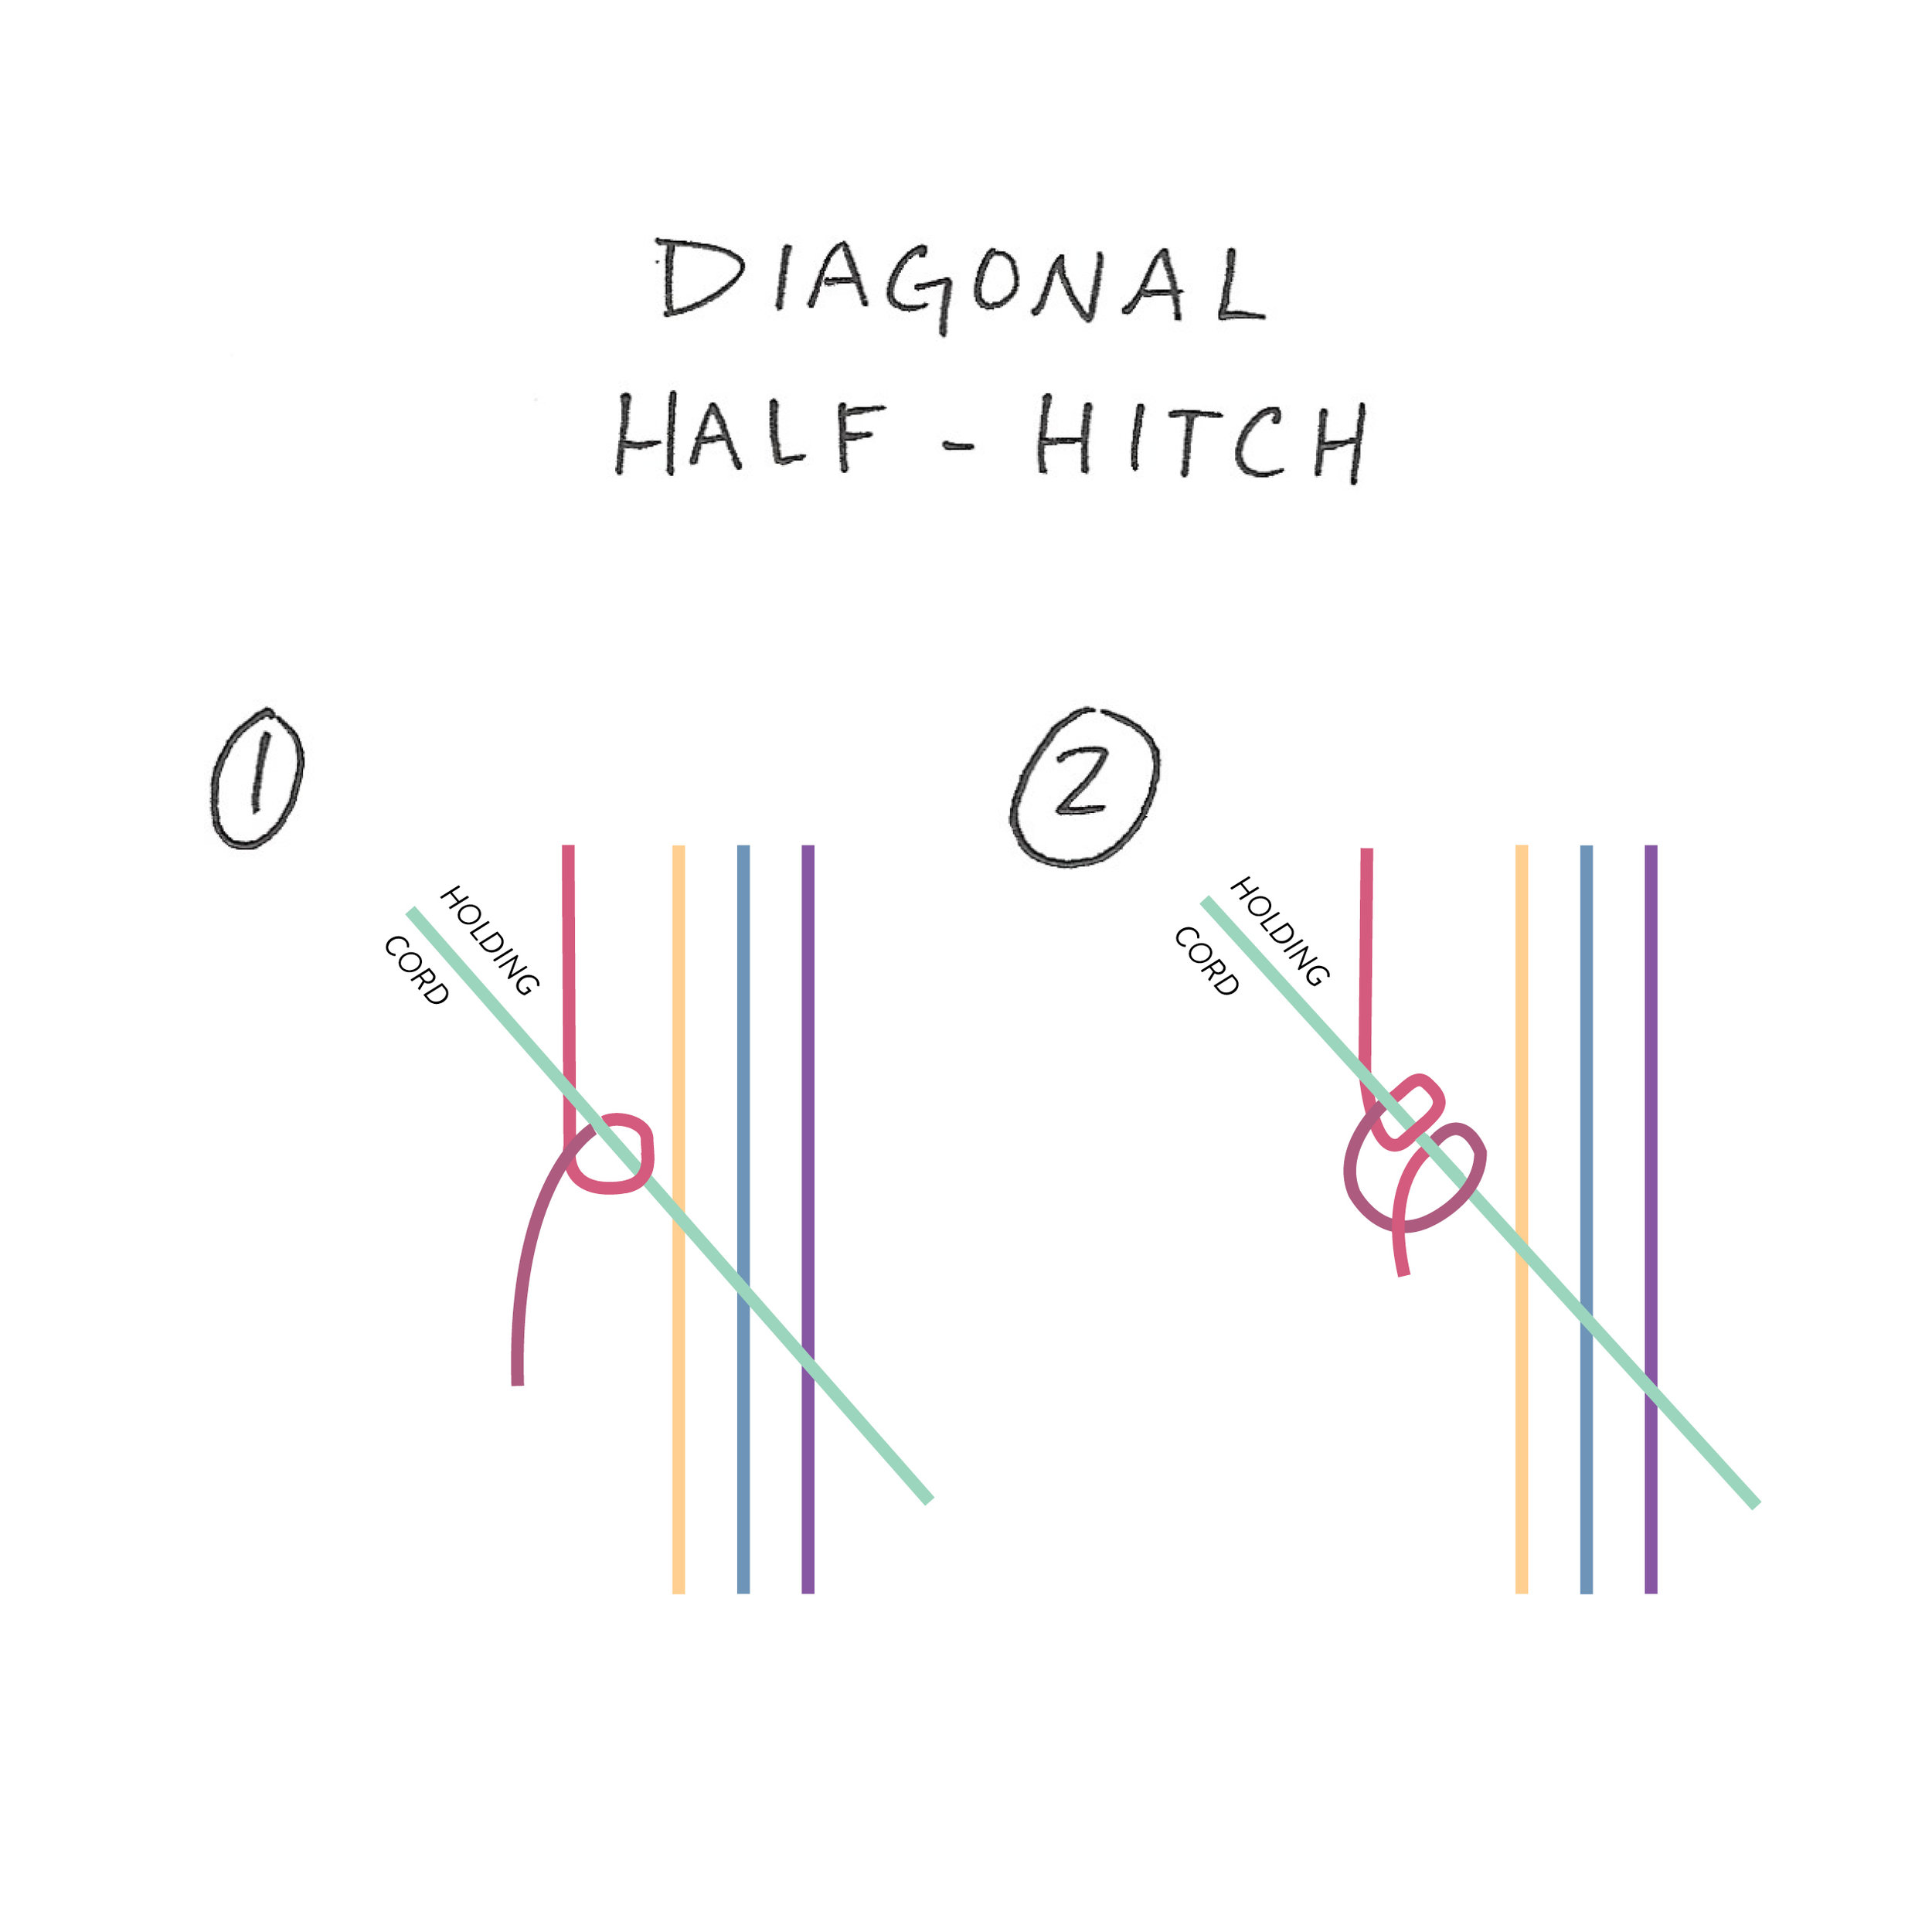 Diagonal Half-Hitch Knot